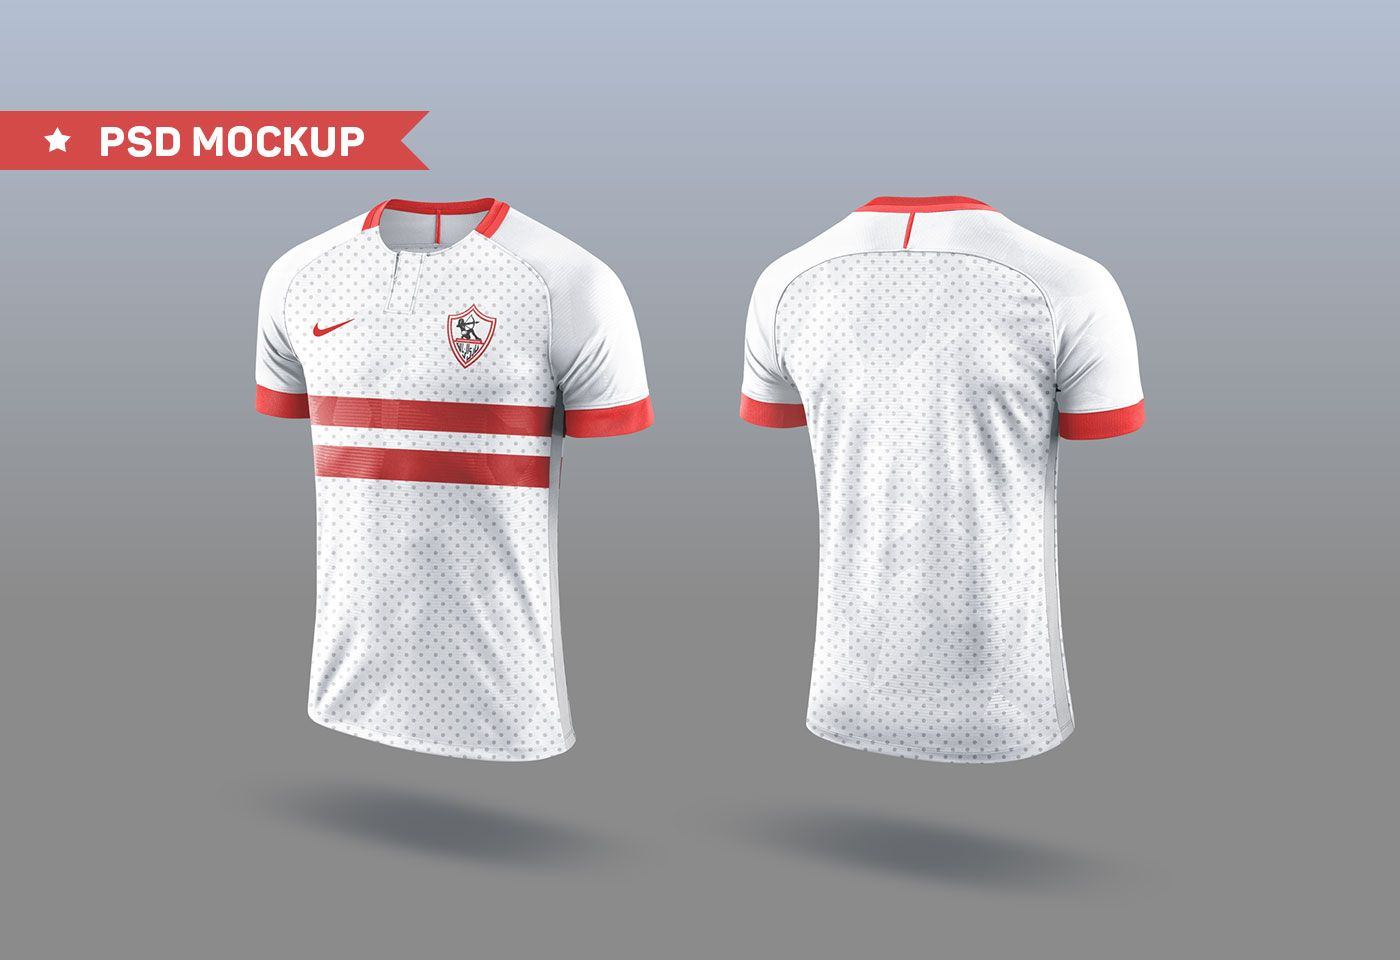 Download New Football Jersey Mockup Psd Sport Shirt Design Shirt Mockup Mockup Psd